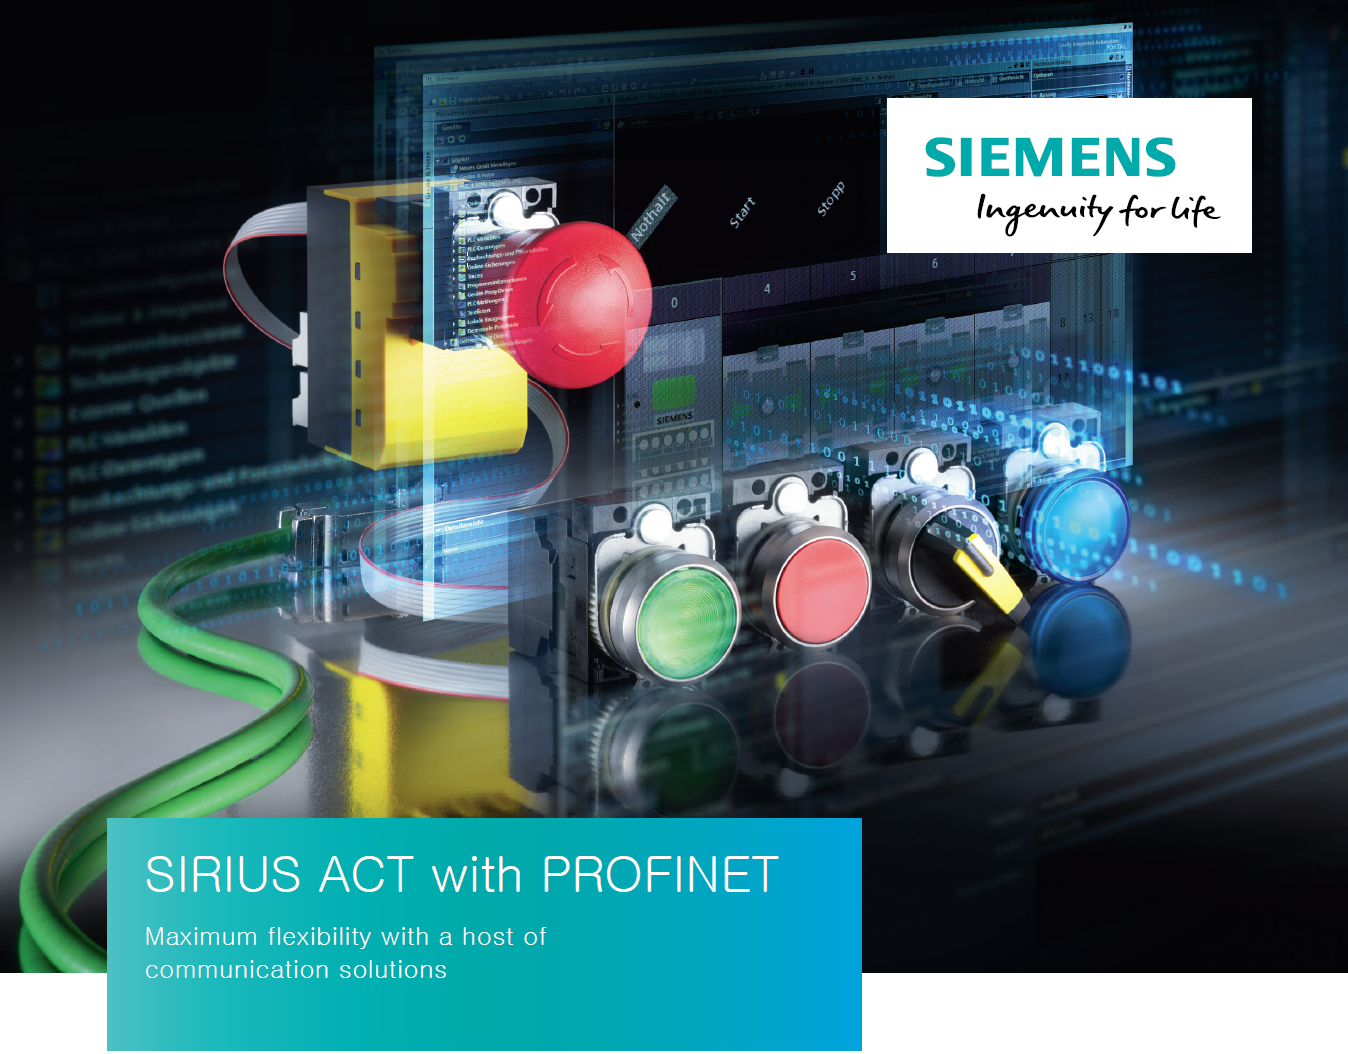 SIRIUS ACT with PROFINET - Introductory Offer